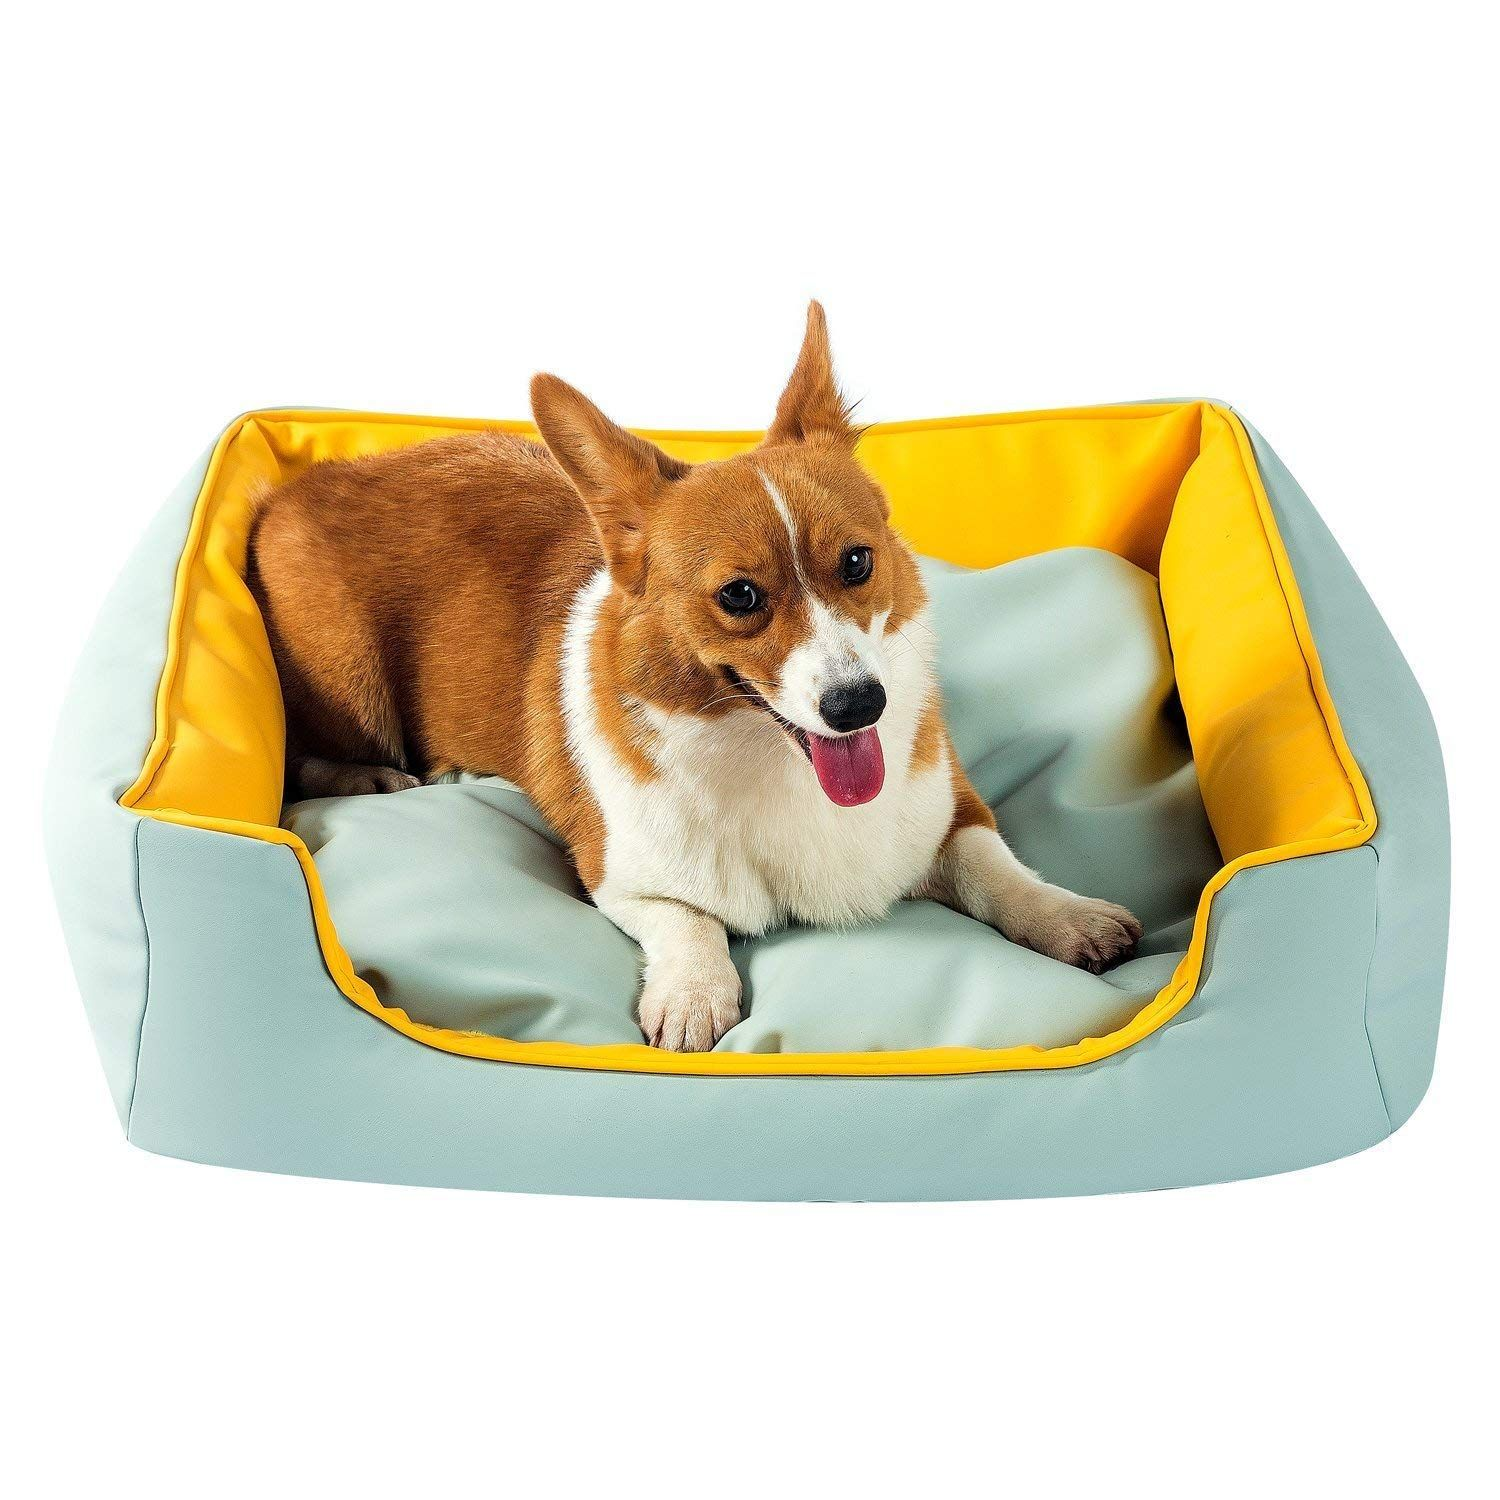 Sepetty Leather Dog Cat Bed Luxurious Dog Bed Removable Easy To Clean And Durable Pet Bed Designed For All Leather Dog Bed Orthopedic Pet Bed Dog Bed Furniture